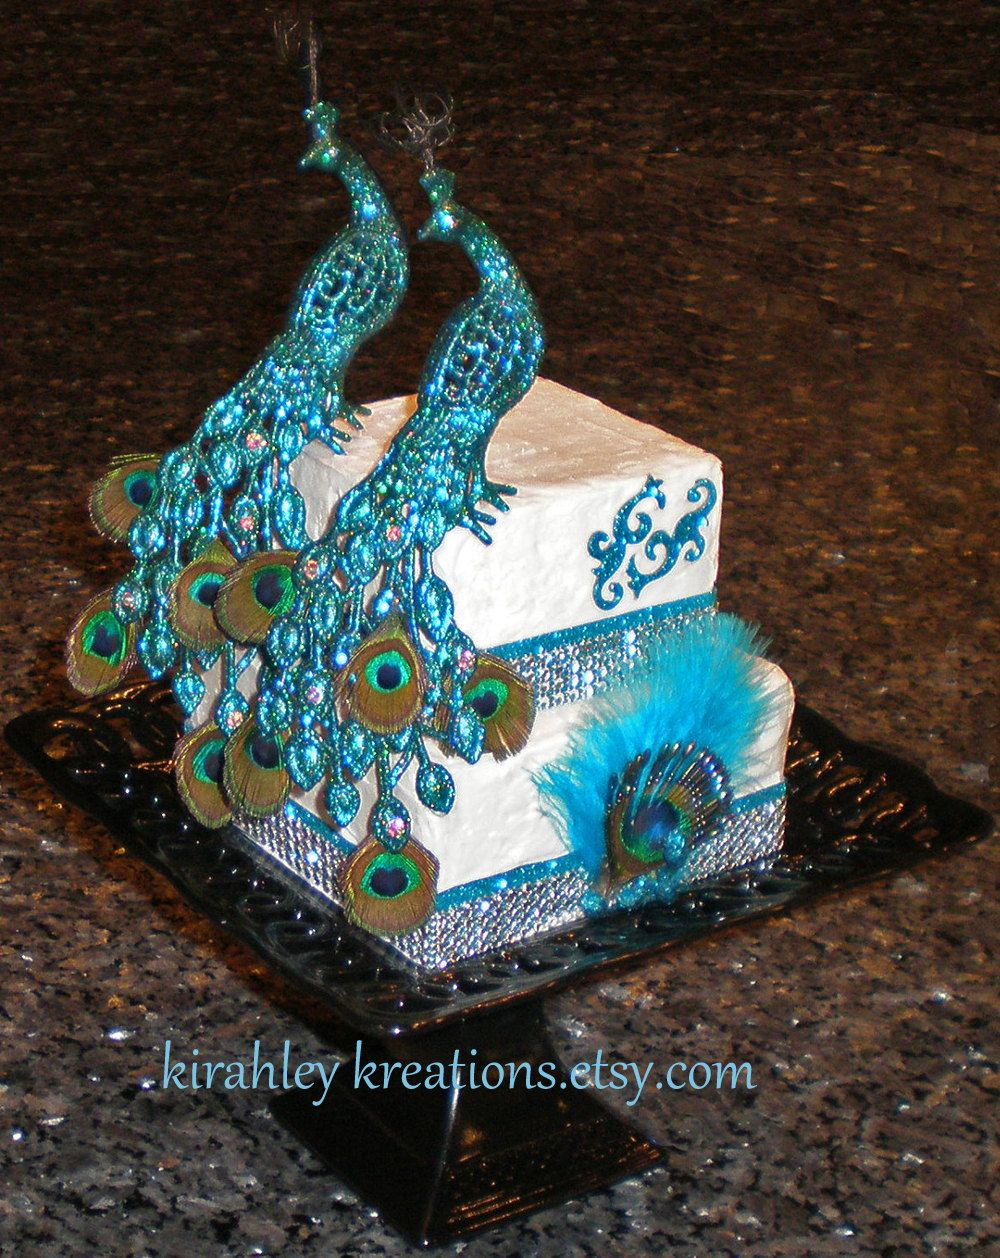 PEACOCK Wedding Cake Toppers -- Gorgeous & Glittery Iridescent Green w/ Mini Peacock Feathers, Curled Herl and Sparkling Swarovski Jewels. $64.00, via Etsy.